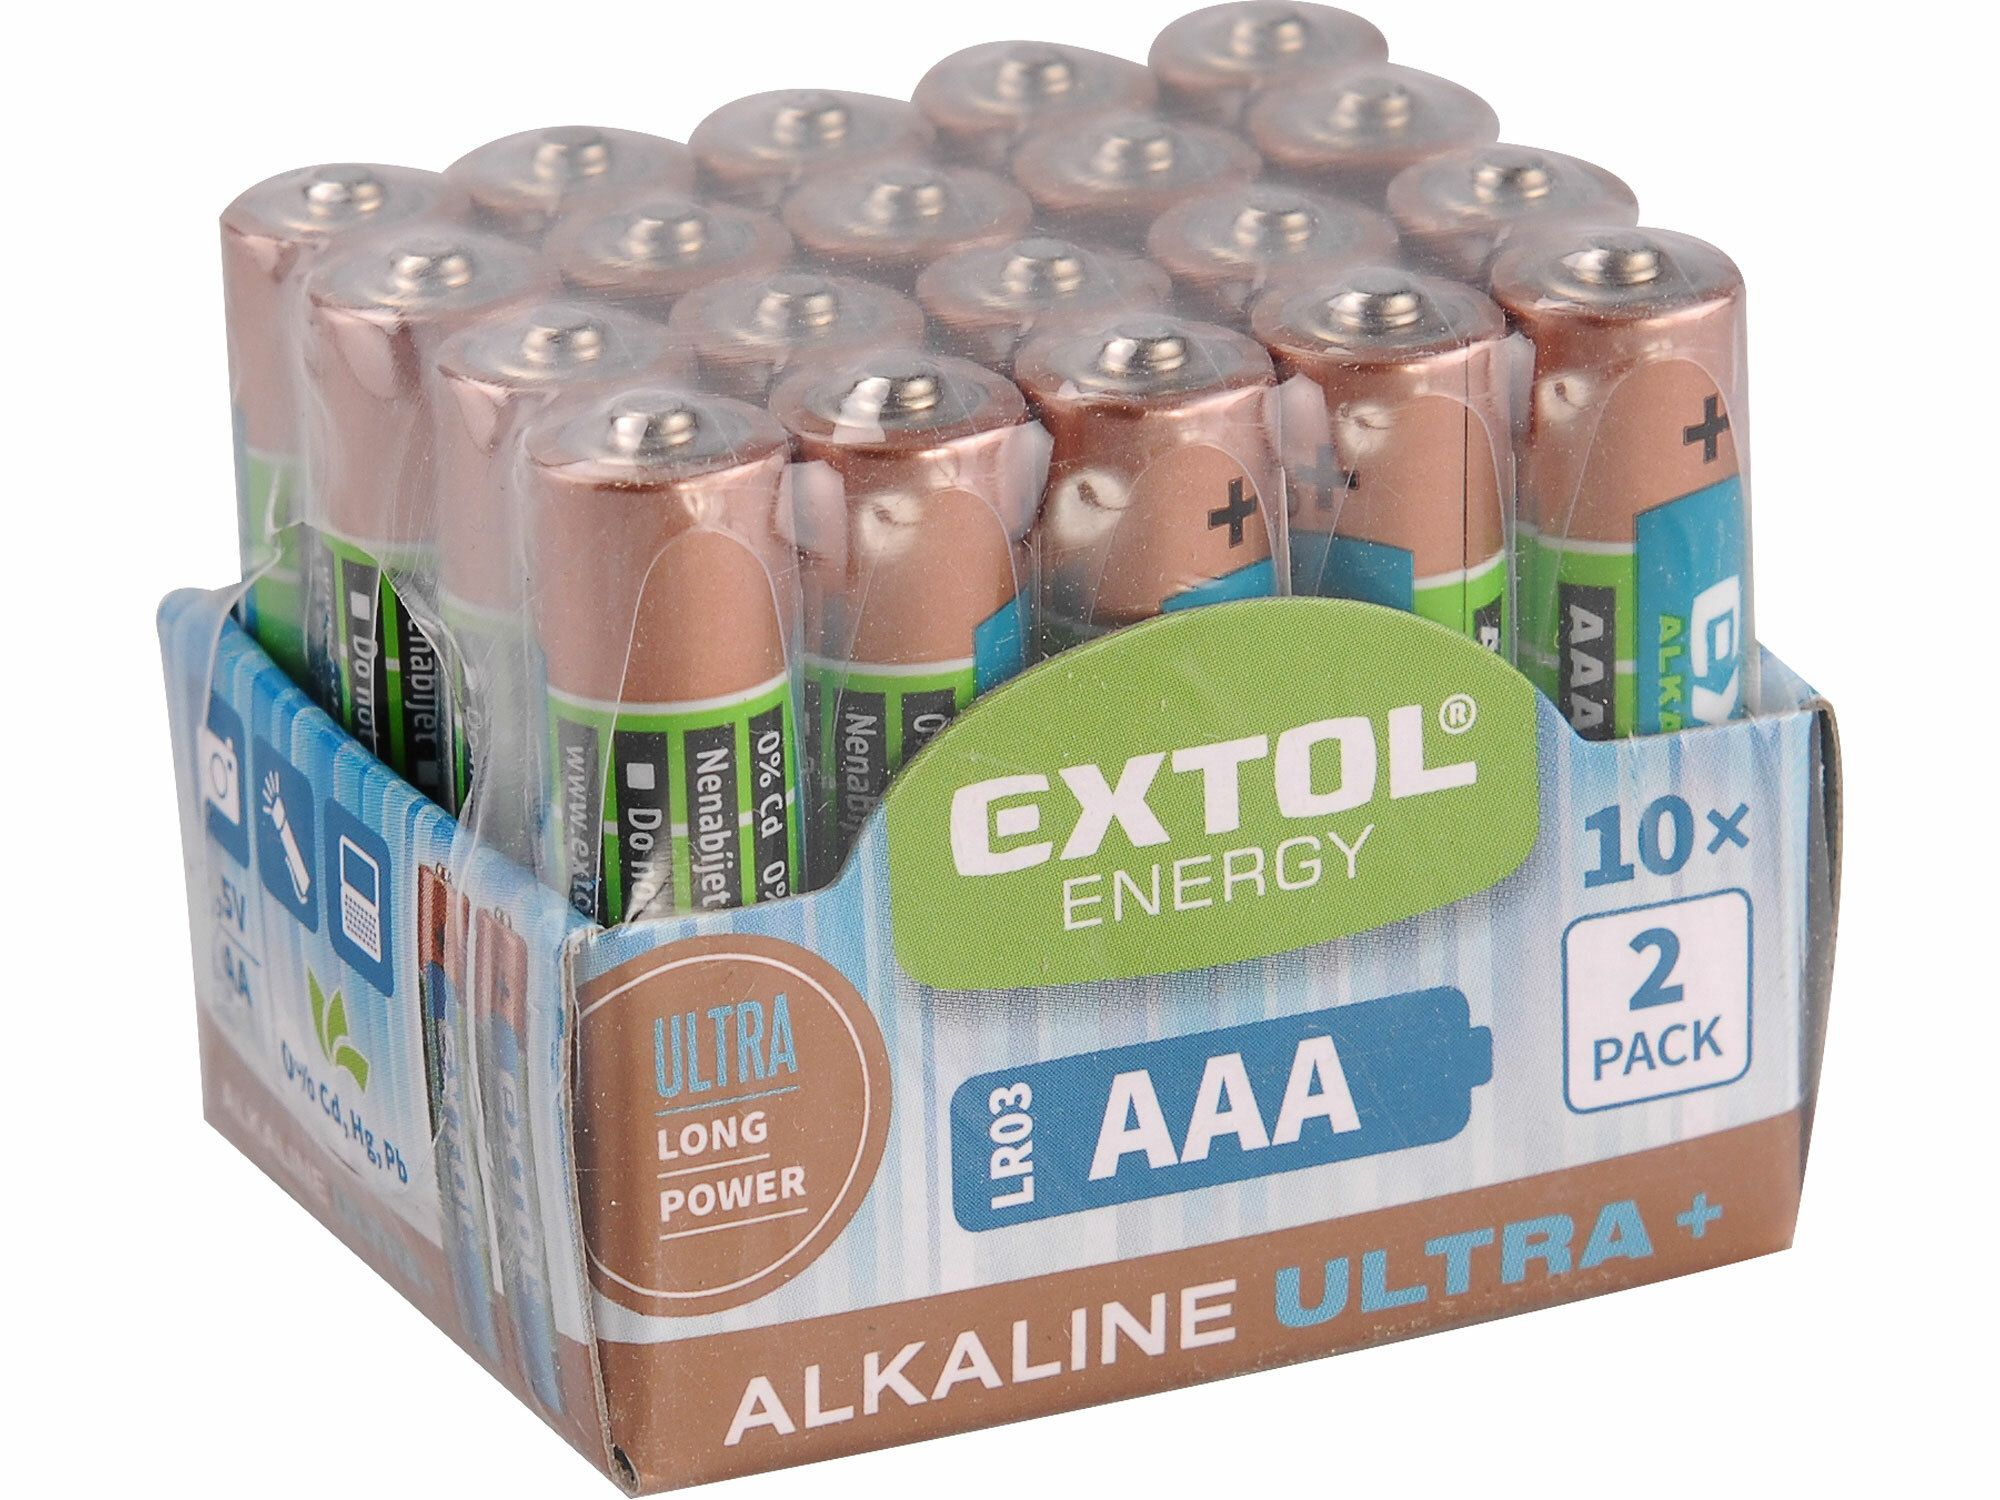 Baterie alkalické EXTOL ENERGY ULTRA +, 20ks, 1,5V AA (LR6) EXTOL-LIGHT